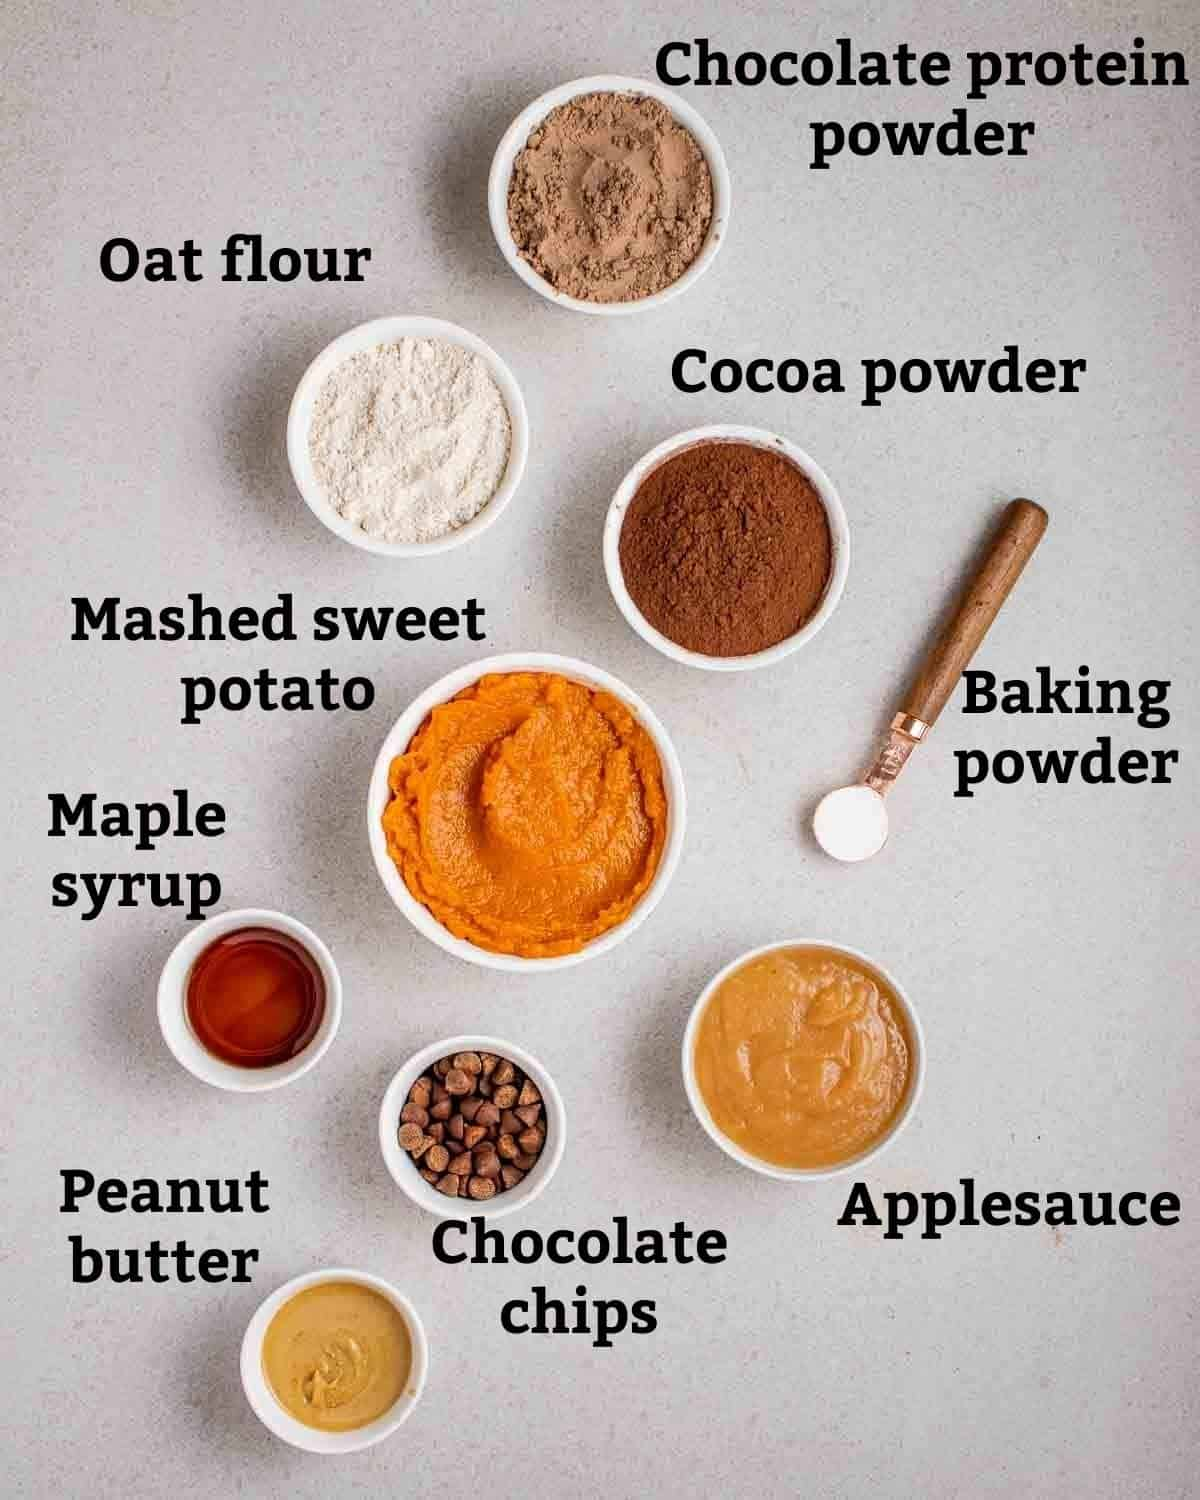 Ingredients needed like mashed sweet potato, protein powder, oat flour, applesauce and maple syrup.